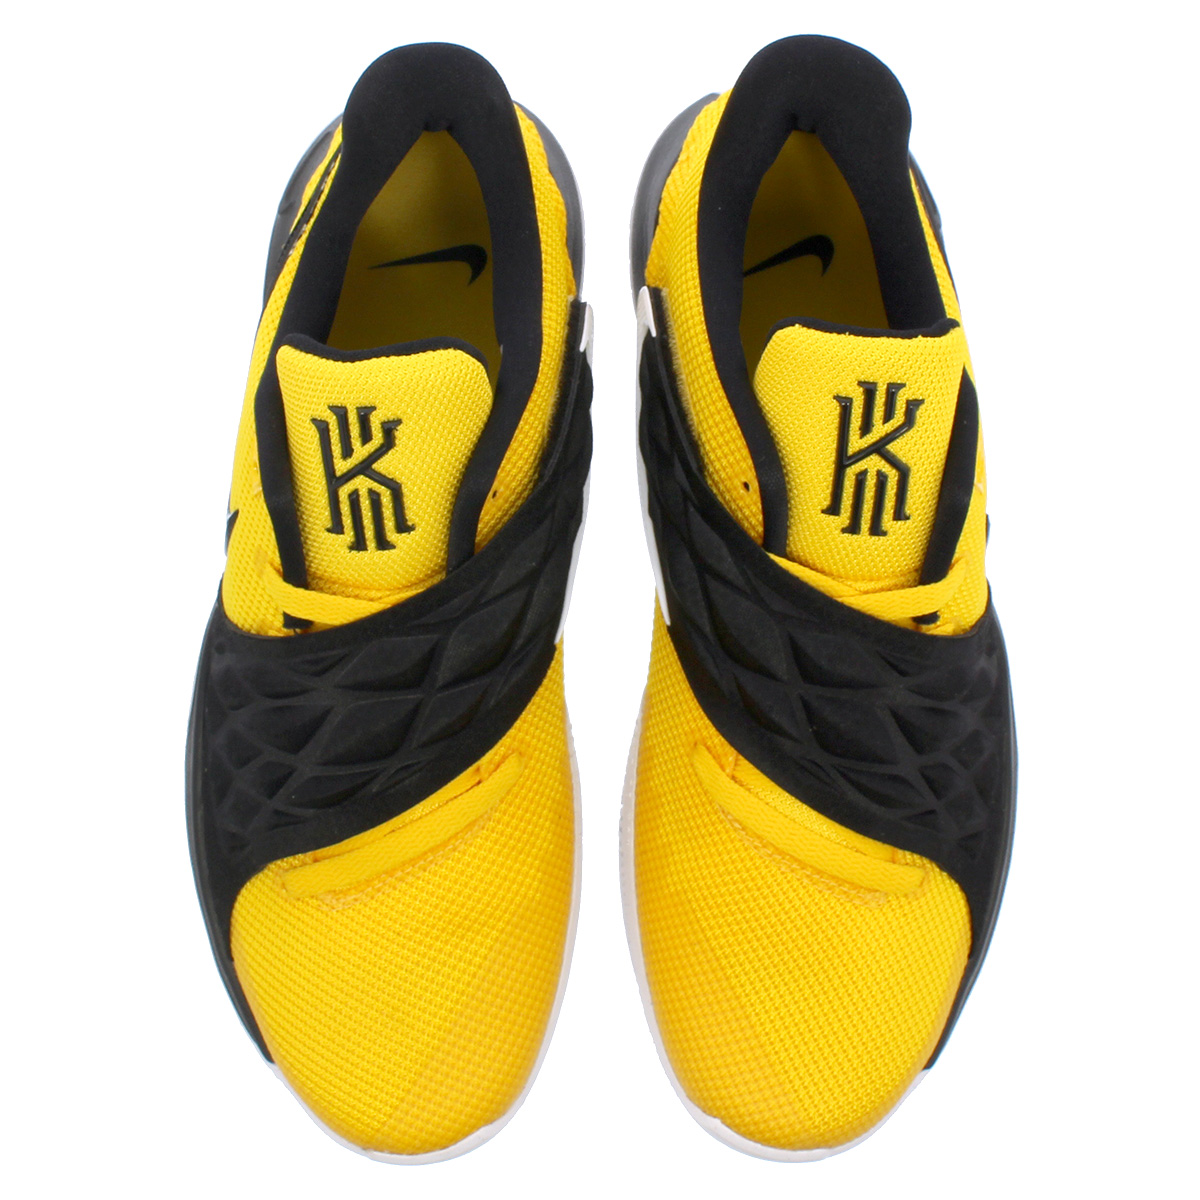 cheap for discount 38759 aadf4 ... clearance nike kyrie 4 low nike chi lee 4 low amarillo black ao8979 700  e8572 5bed4